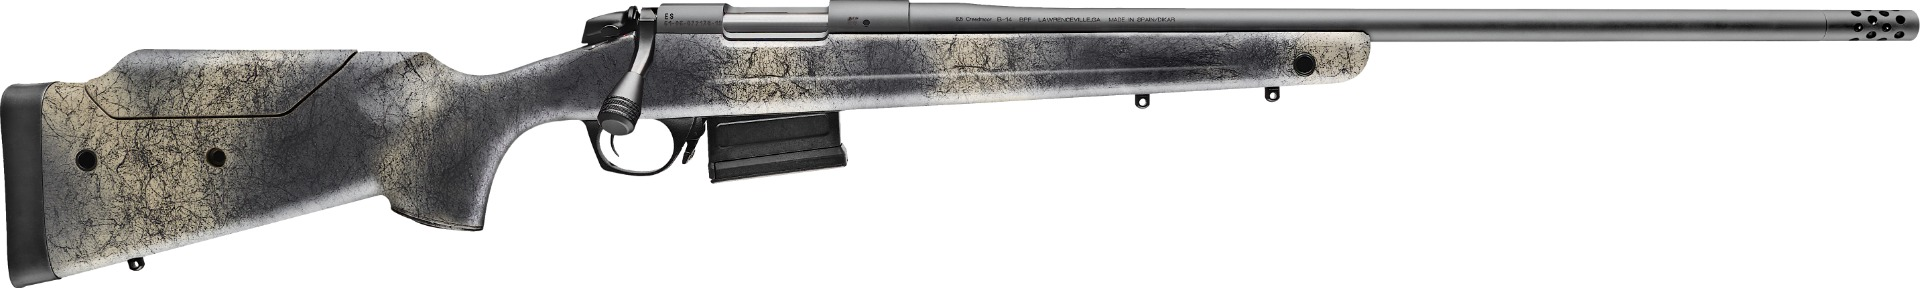 Bergara Terrain Wilderness 6.5 Creedmoor